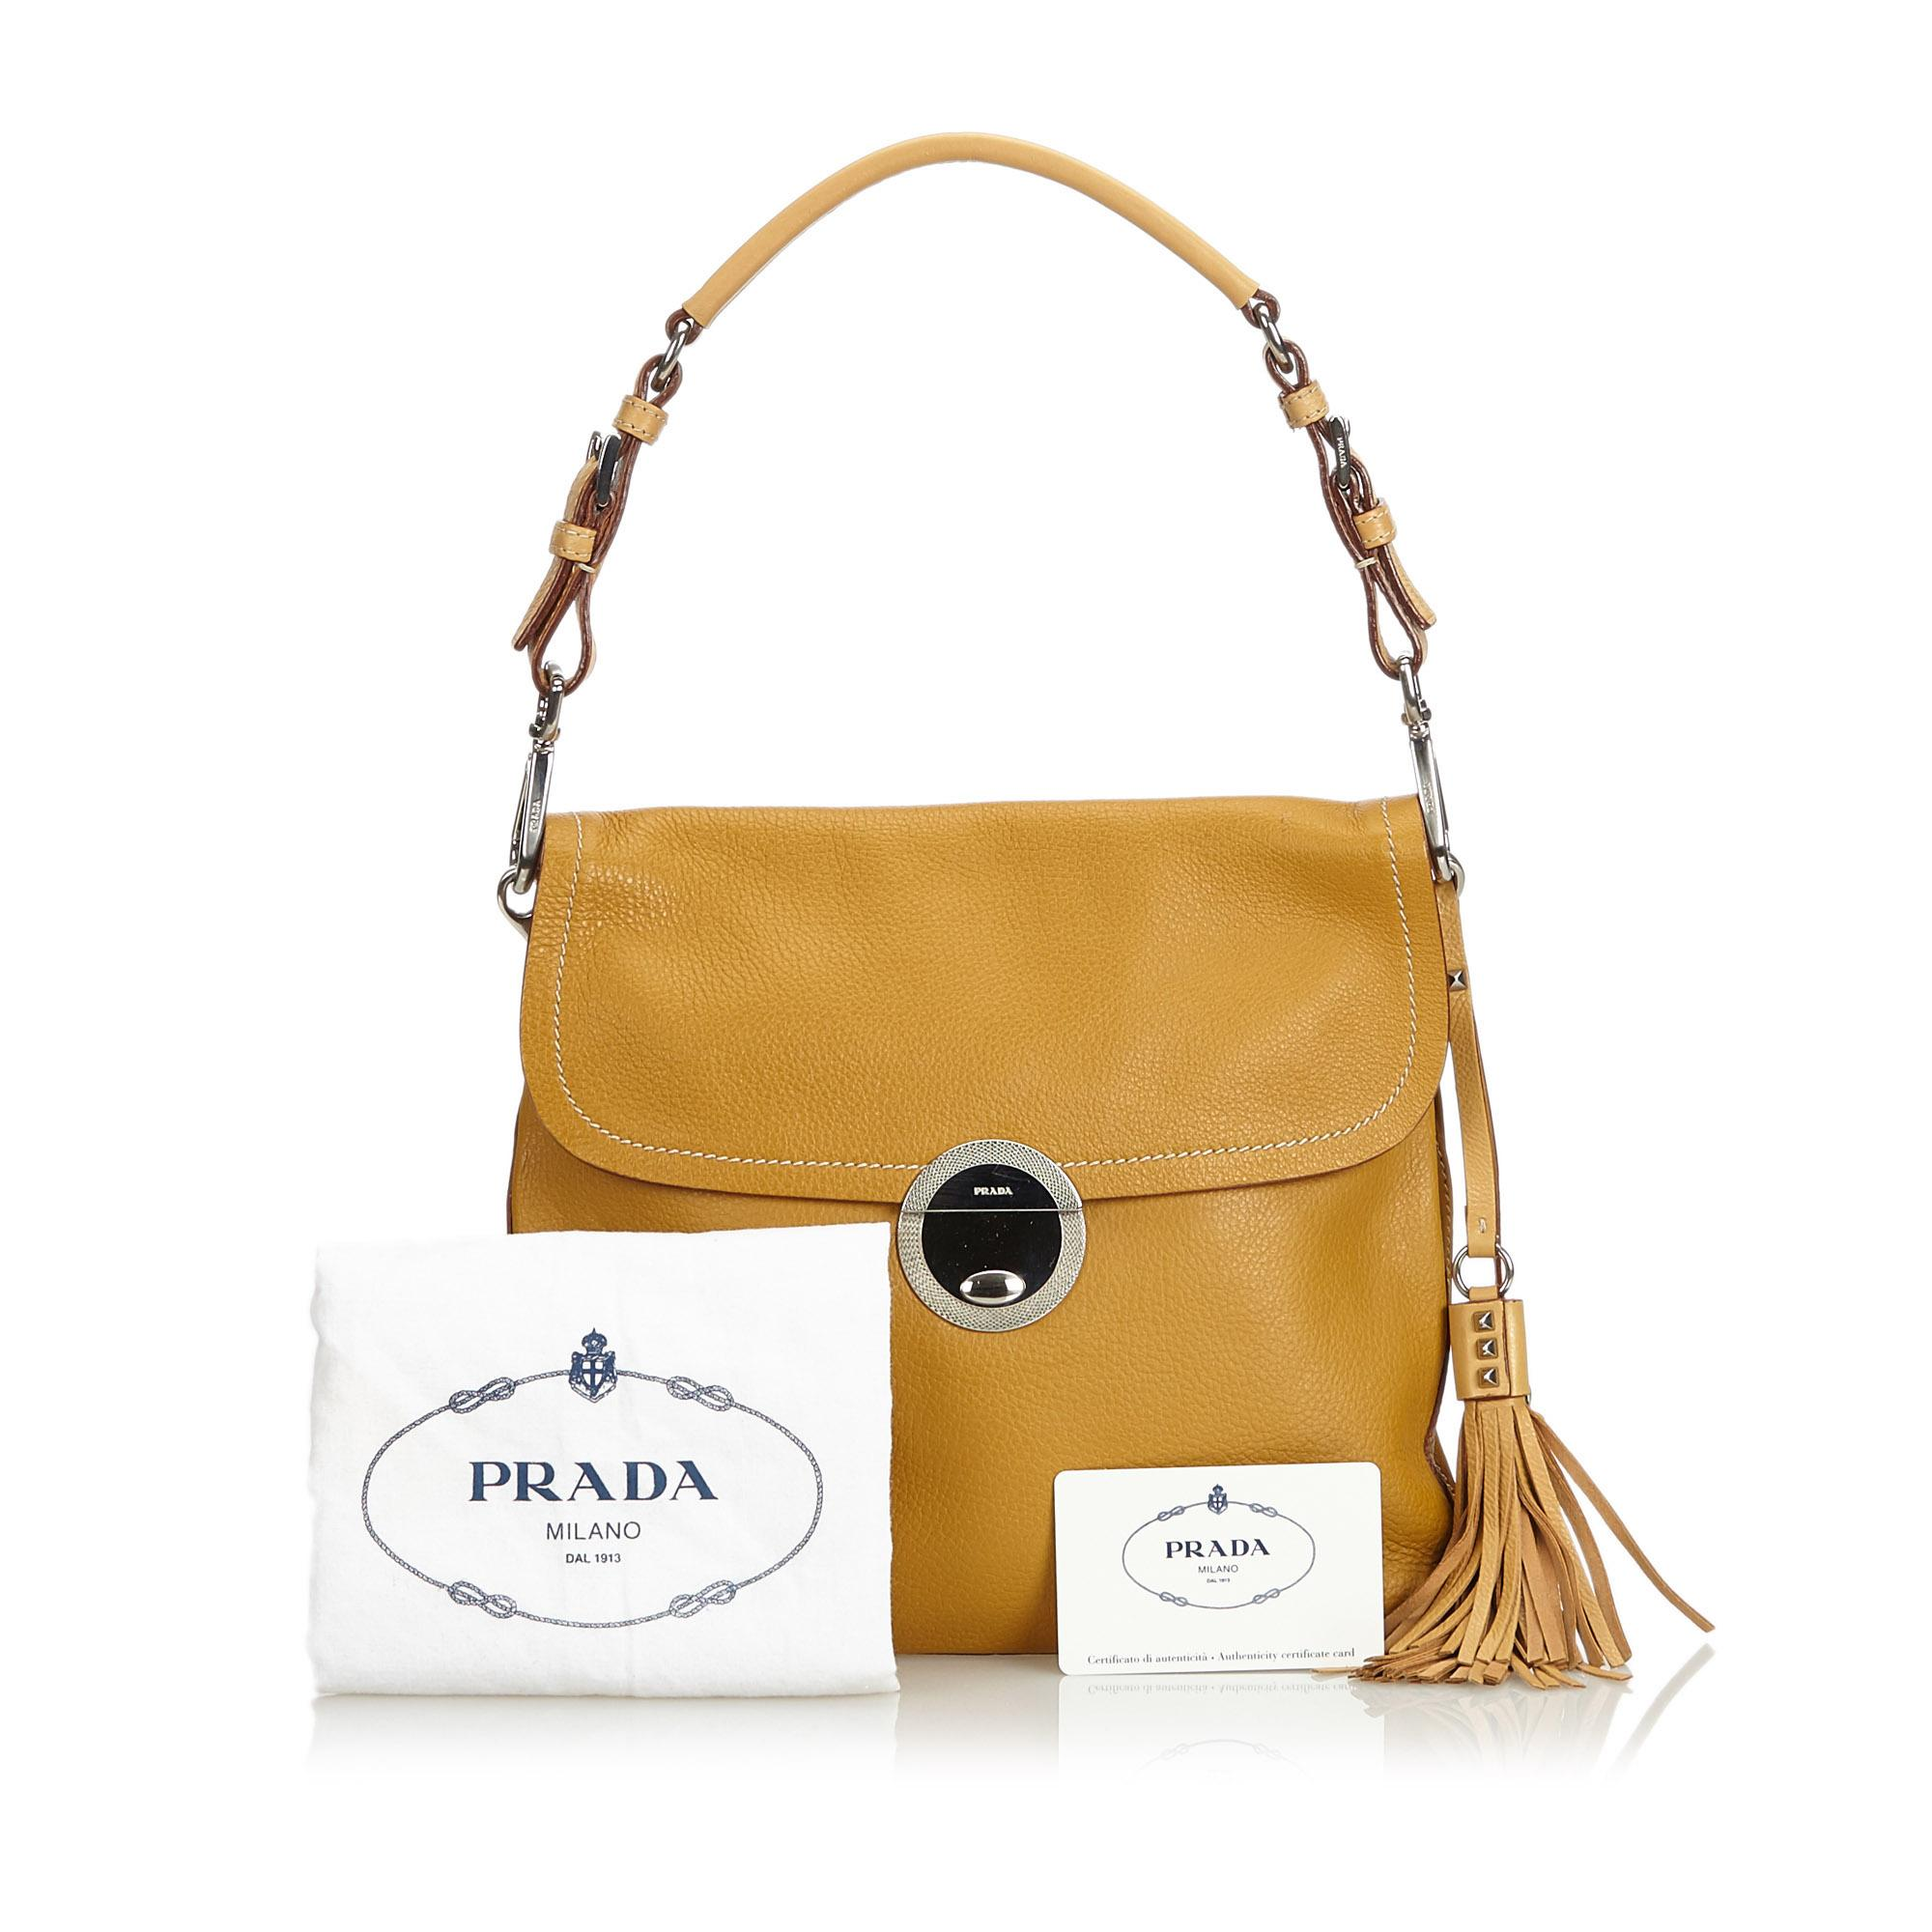 4af19e71a63b0c Prada Brown Leather Shoulder Bag Italy w/ Dust BagAuthenticity Card For  Sale at 1stdibs